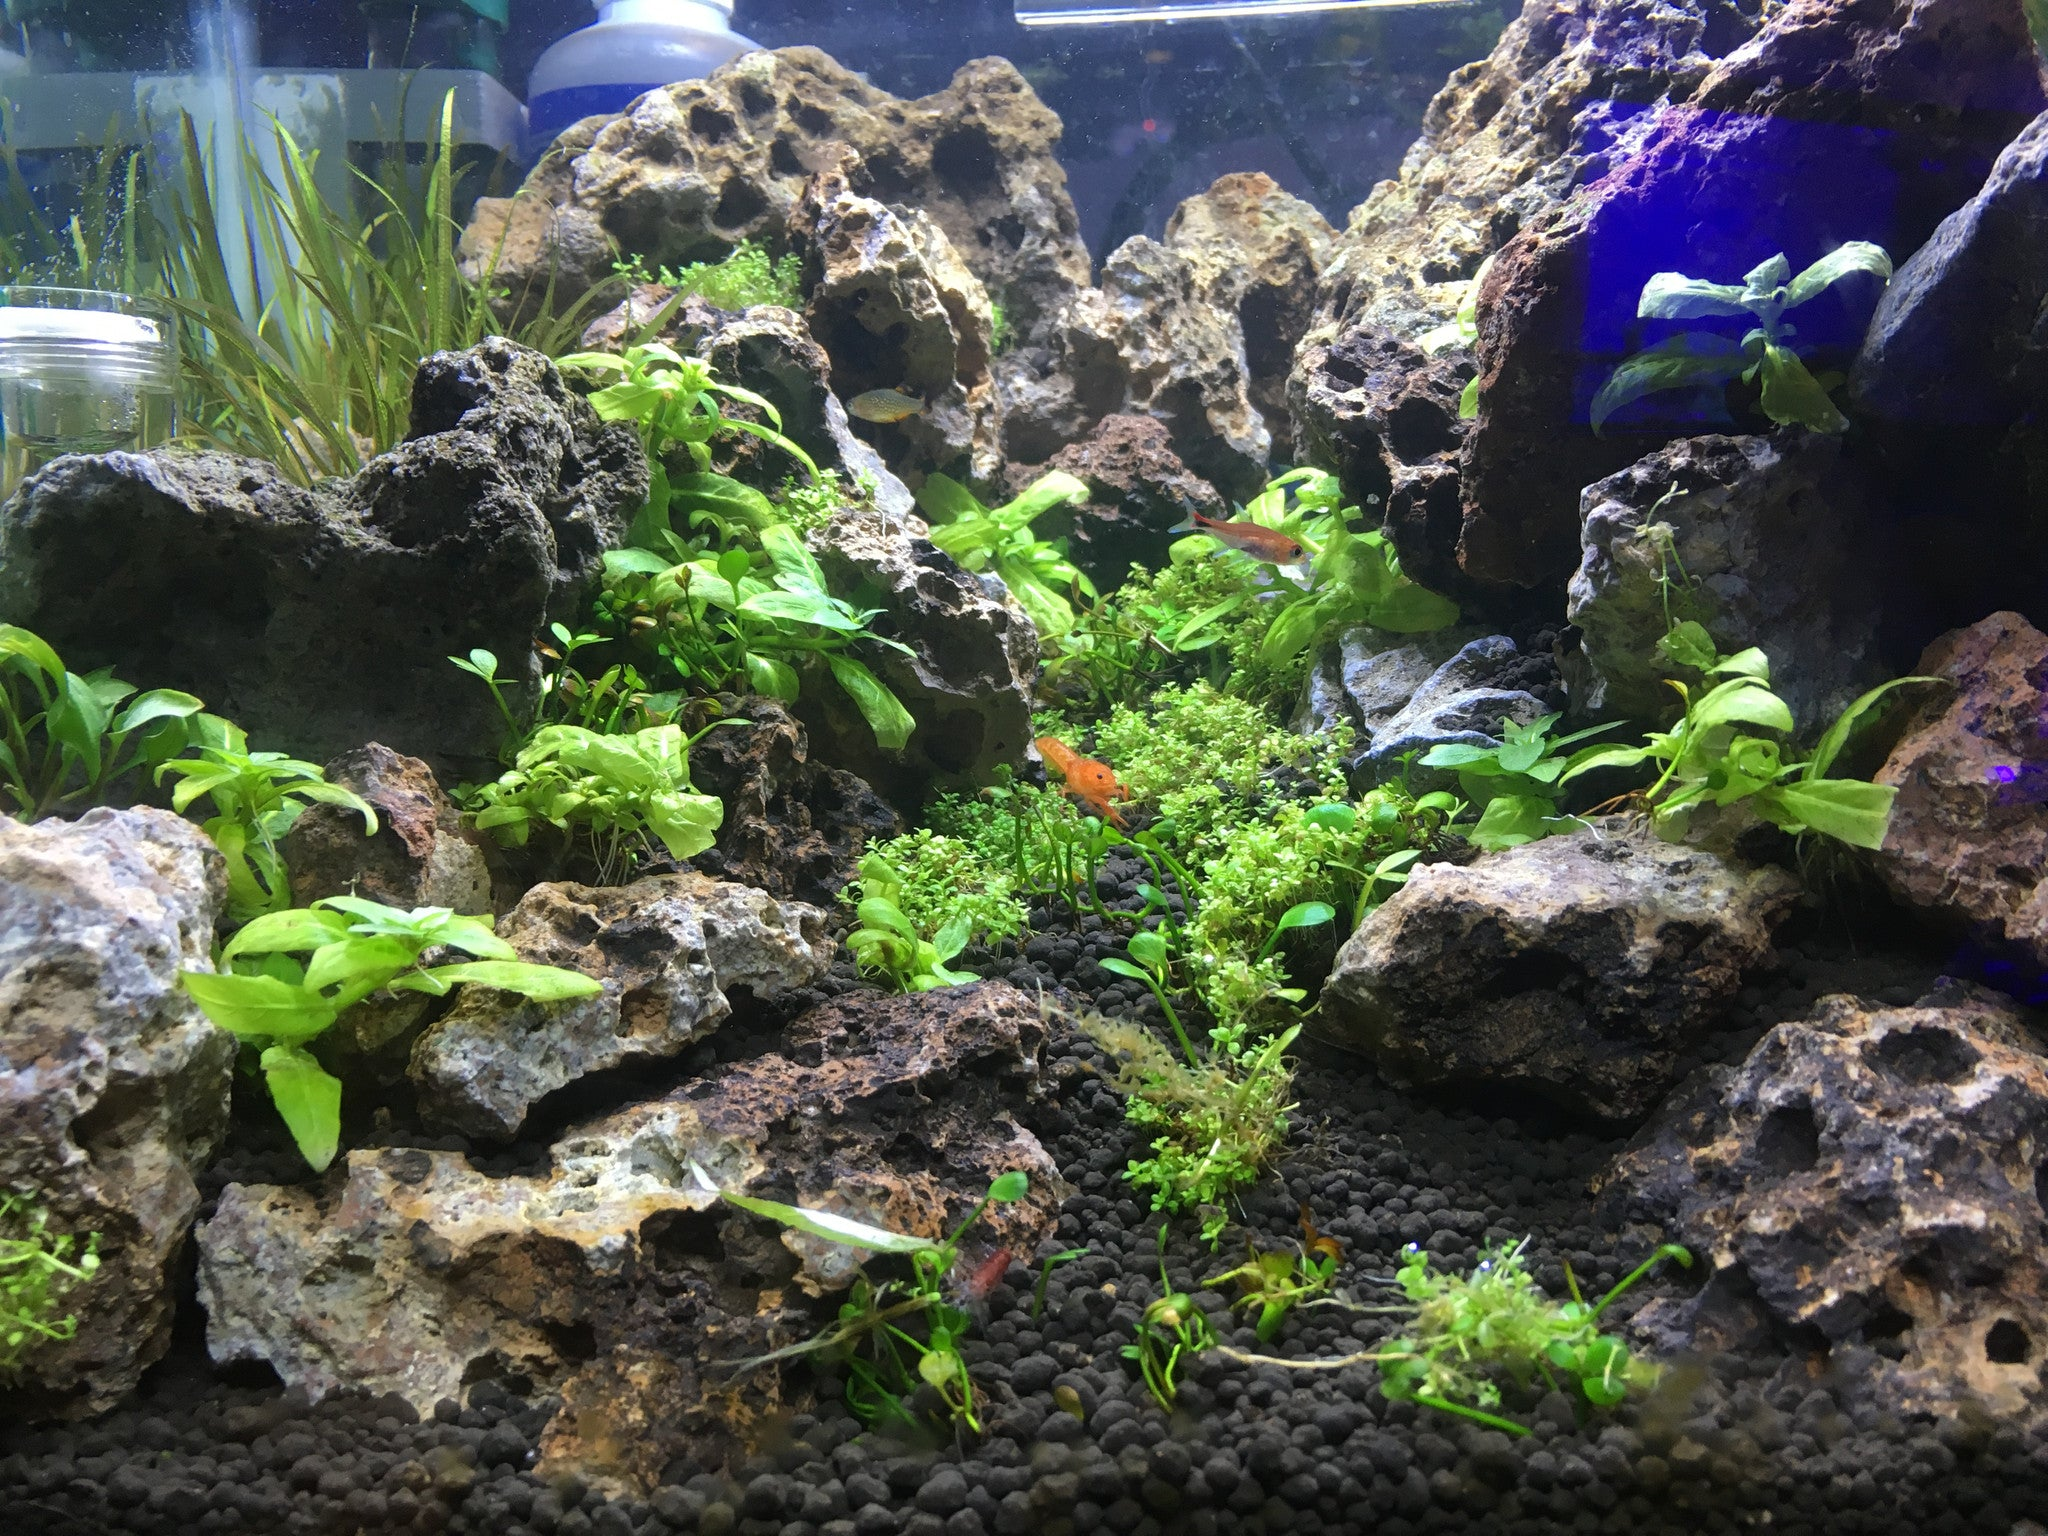 Fish aquariums near me family fun at north aquariums for Aquariums for sale near me